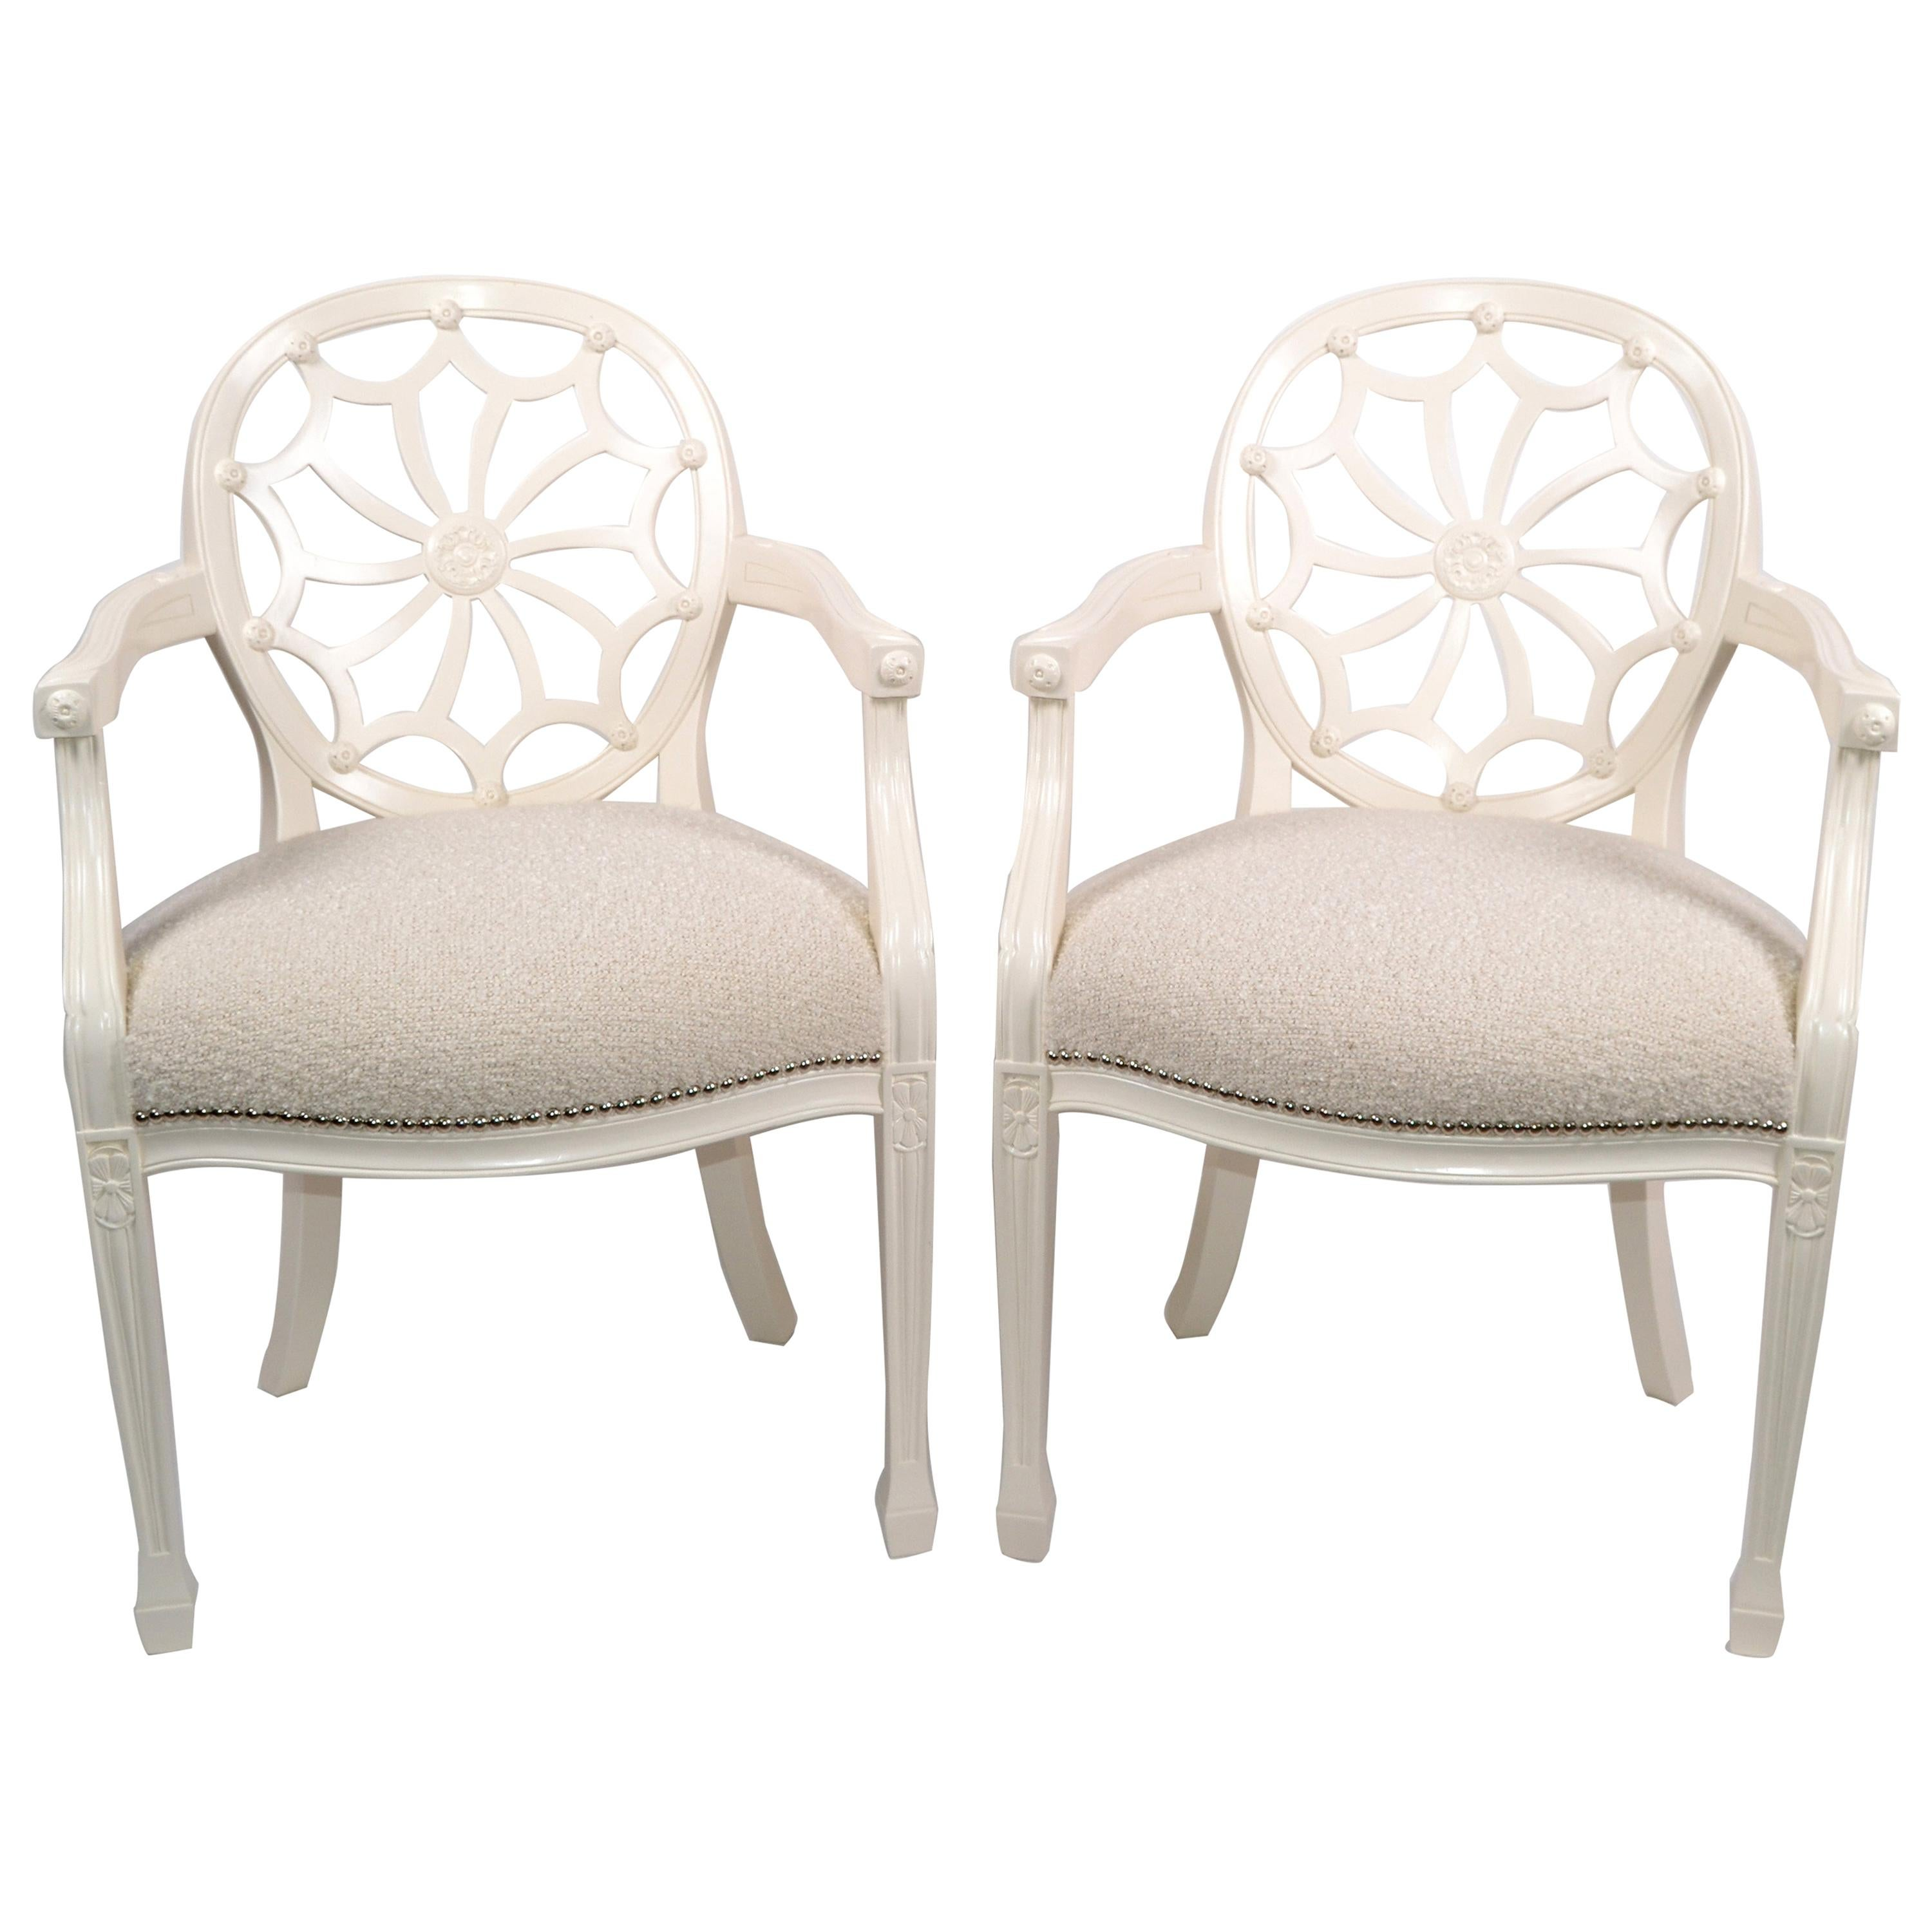 Pair of Hollywood Regency Off White Wooden Ornate Armchairs Beige Bouclé Fabric